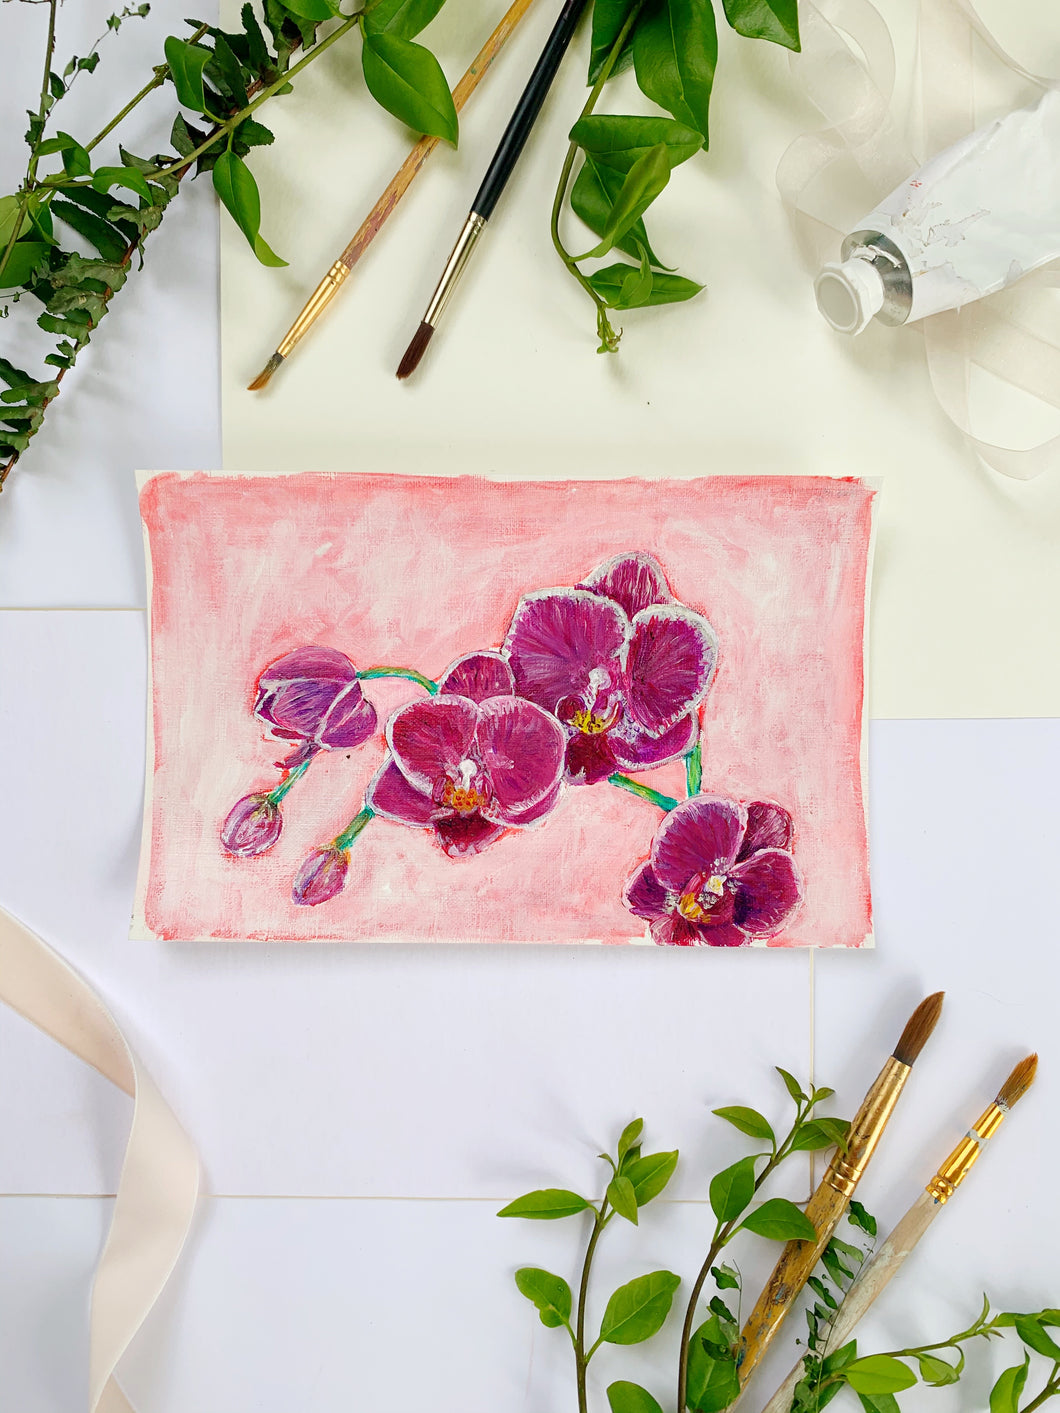 Family Floral Orchid Original Painting - Mari